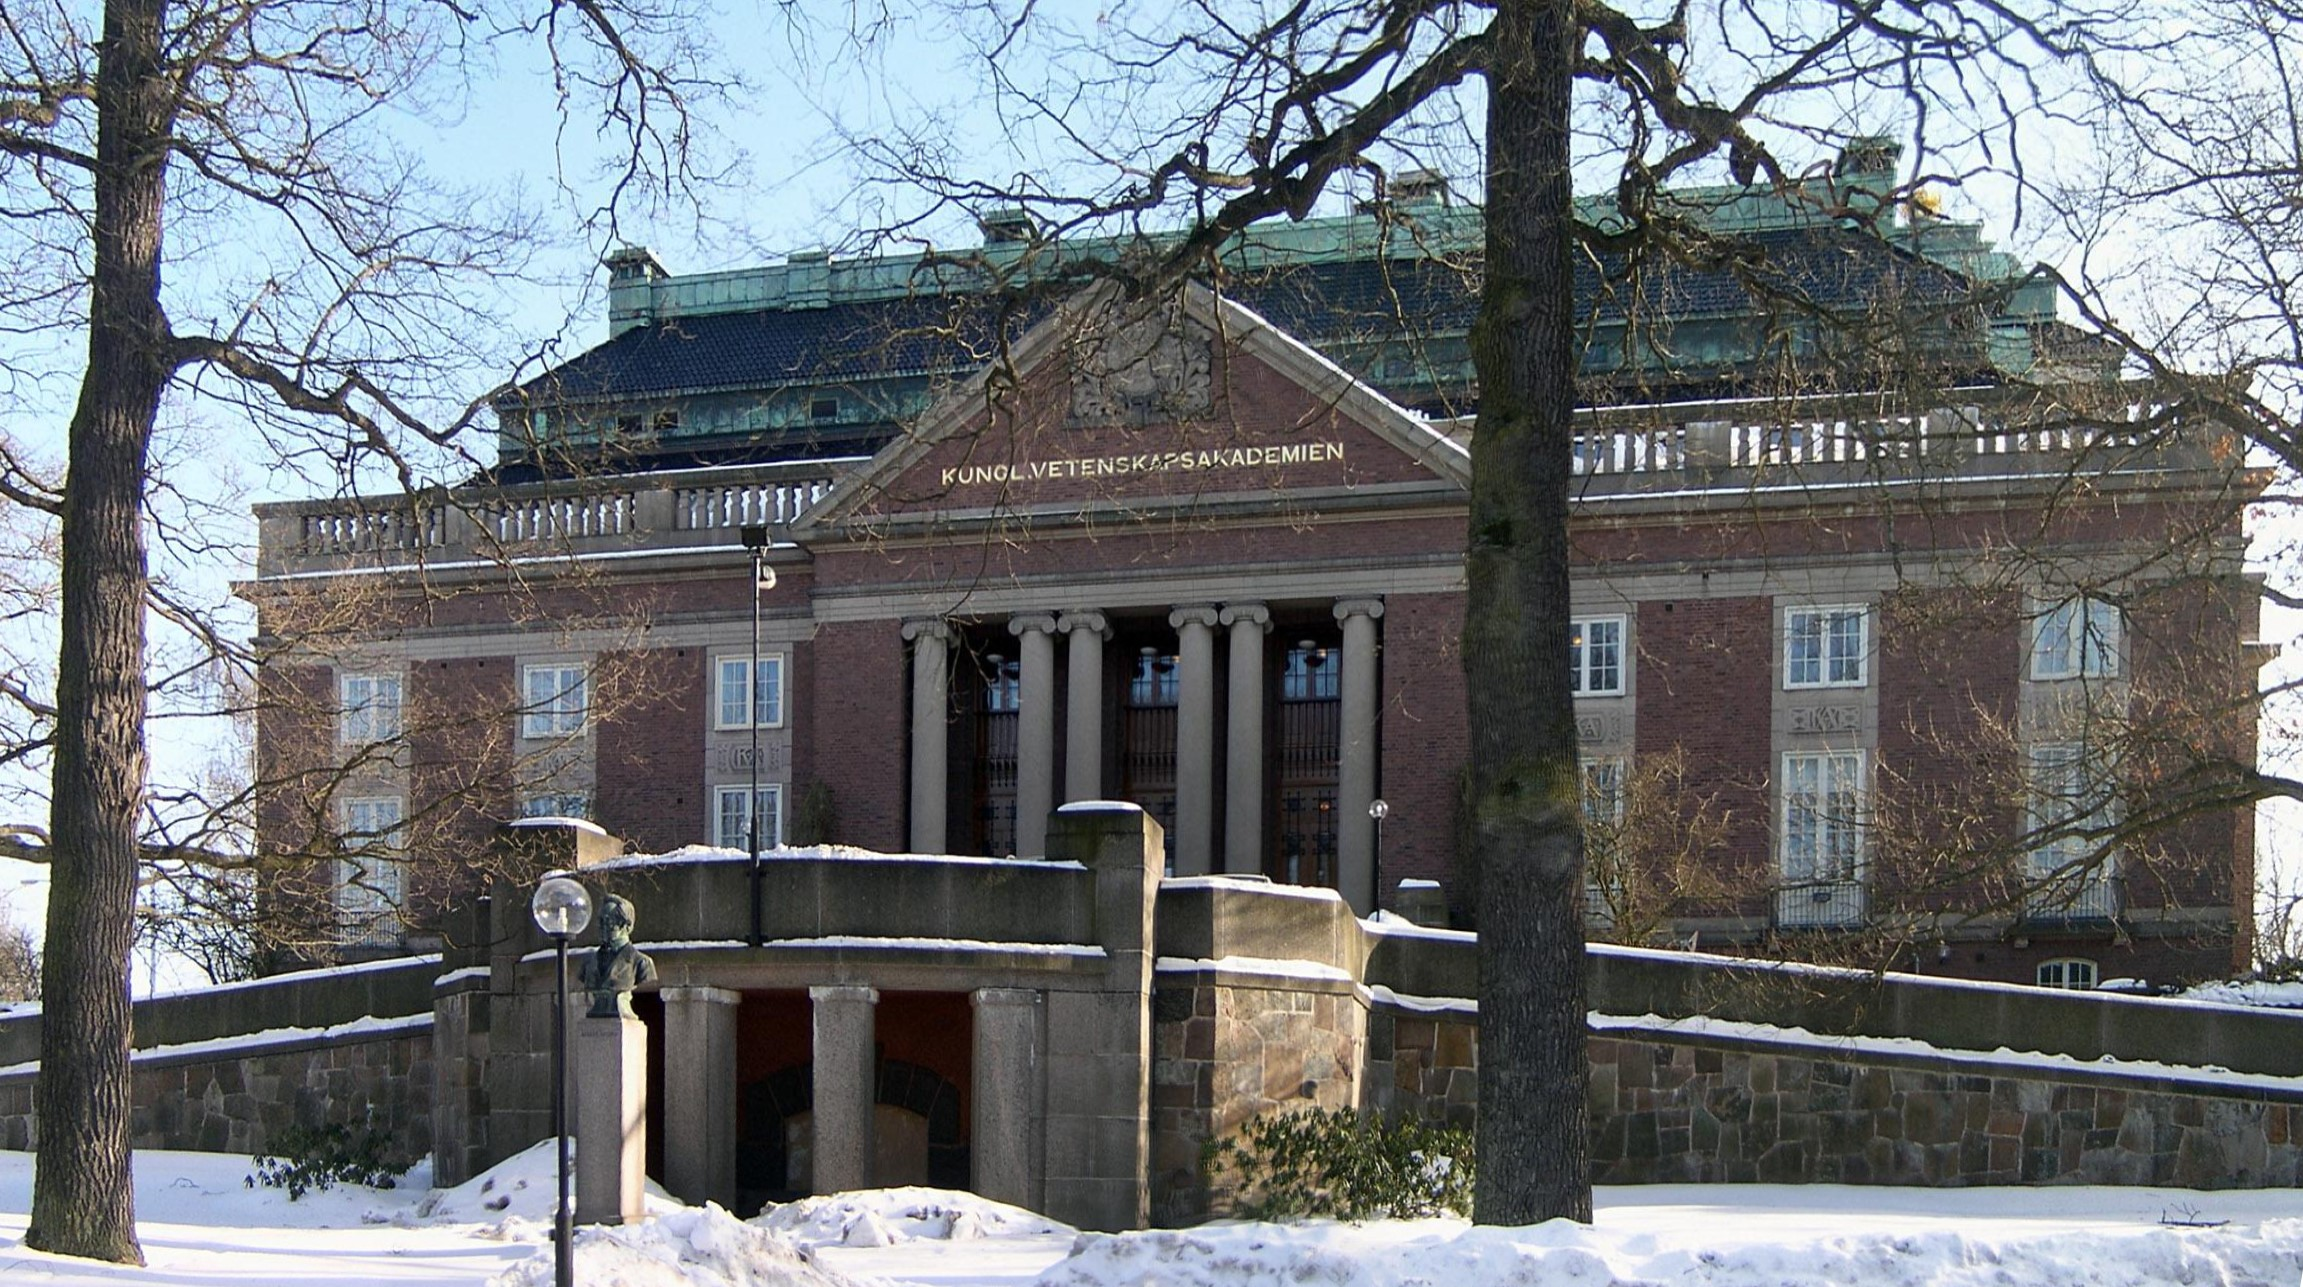 Main building of the Royal Swedish Academy of Sciences in [[Stockholm